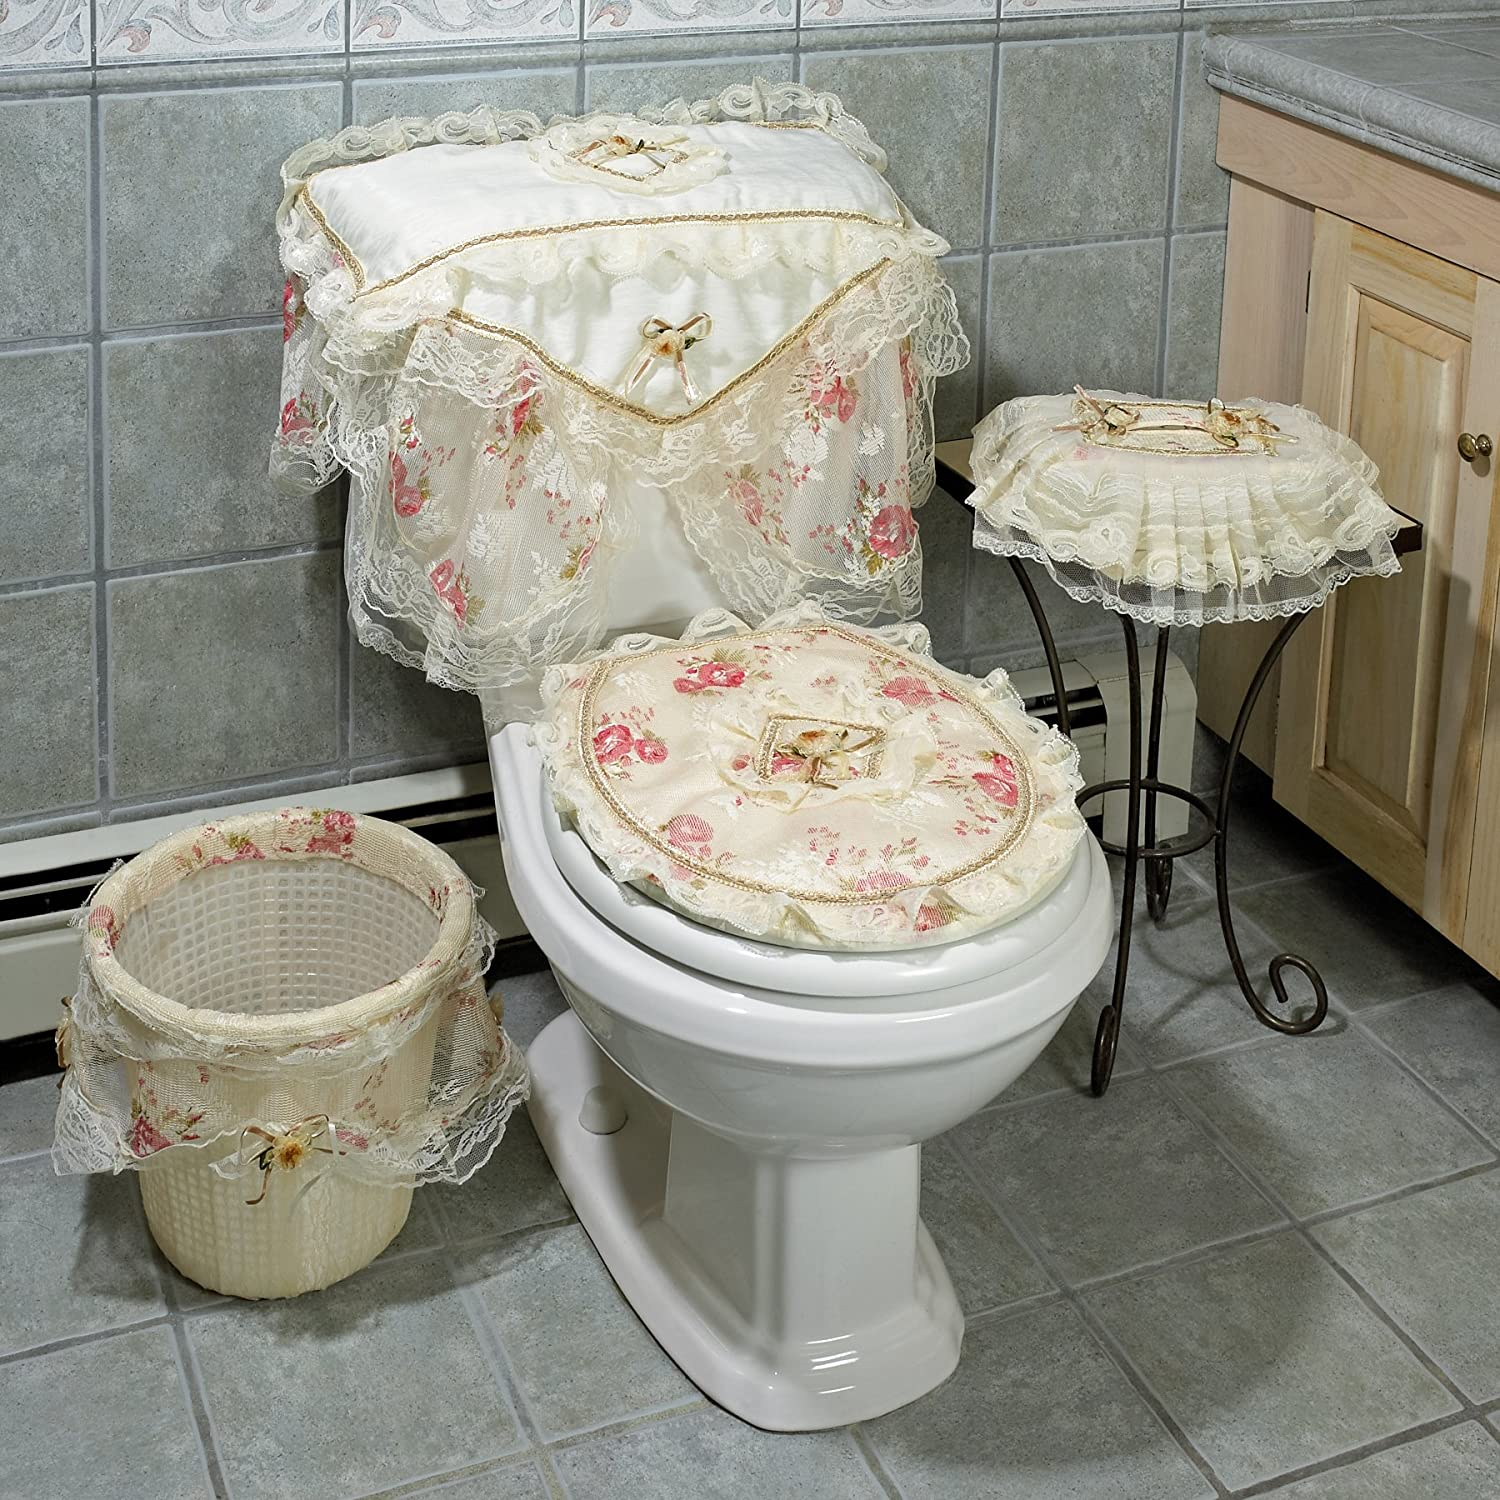 Lacey linen pink flowers bathroom set toilet tank seat for Pink bathroom bin